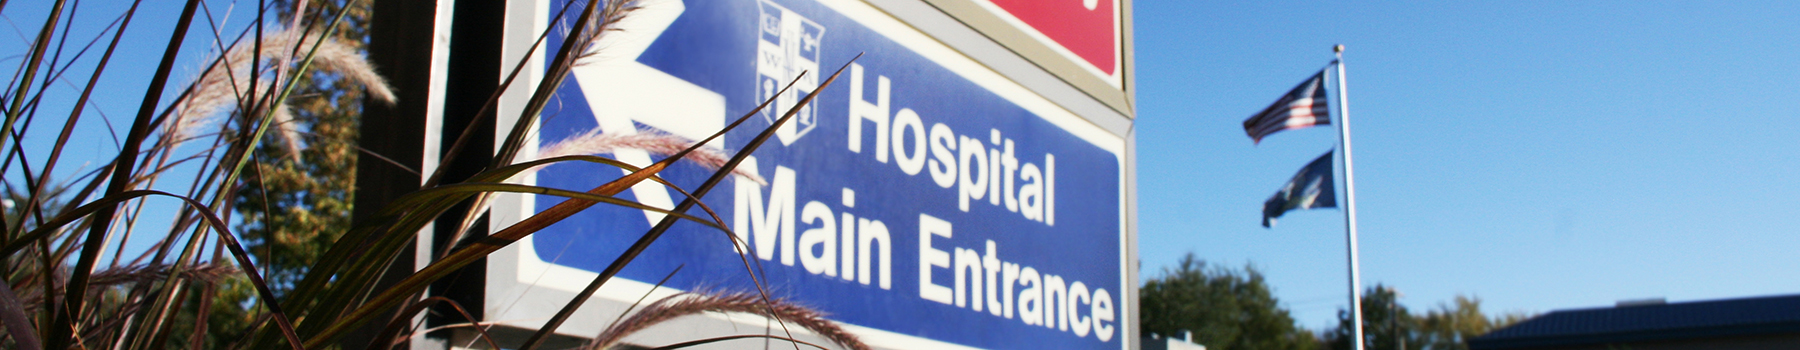 William Newton Hospital entrance